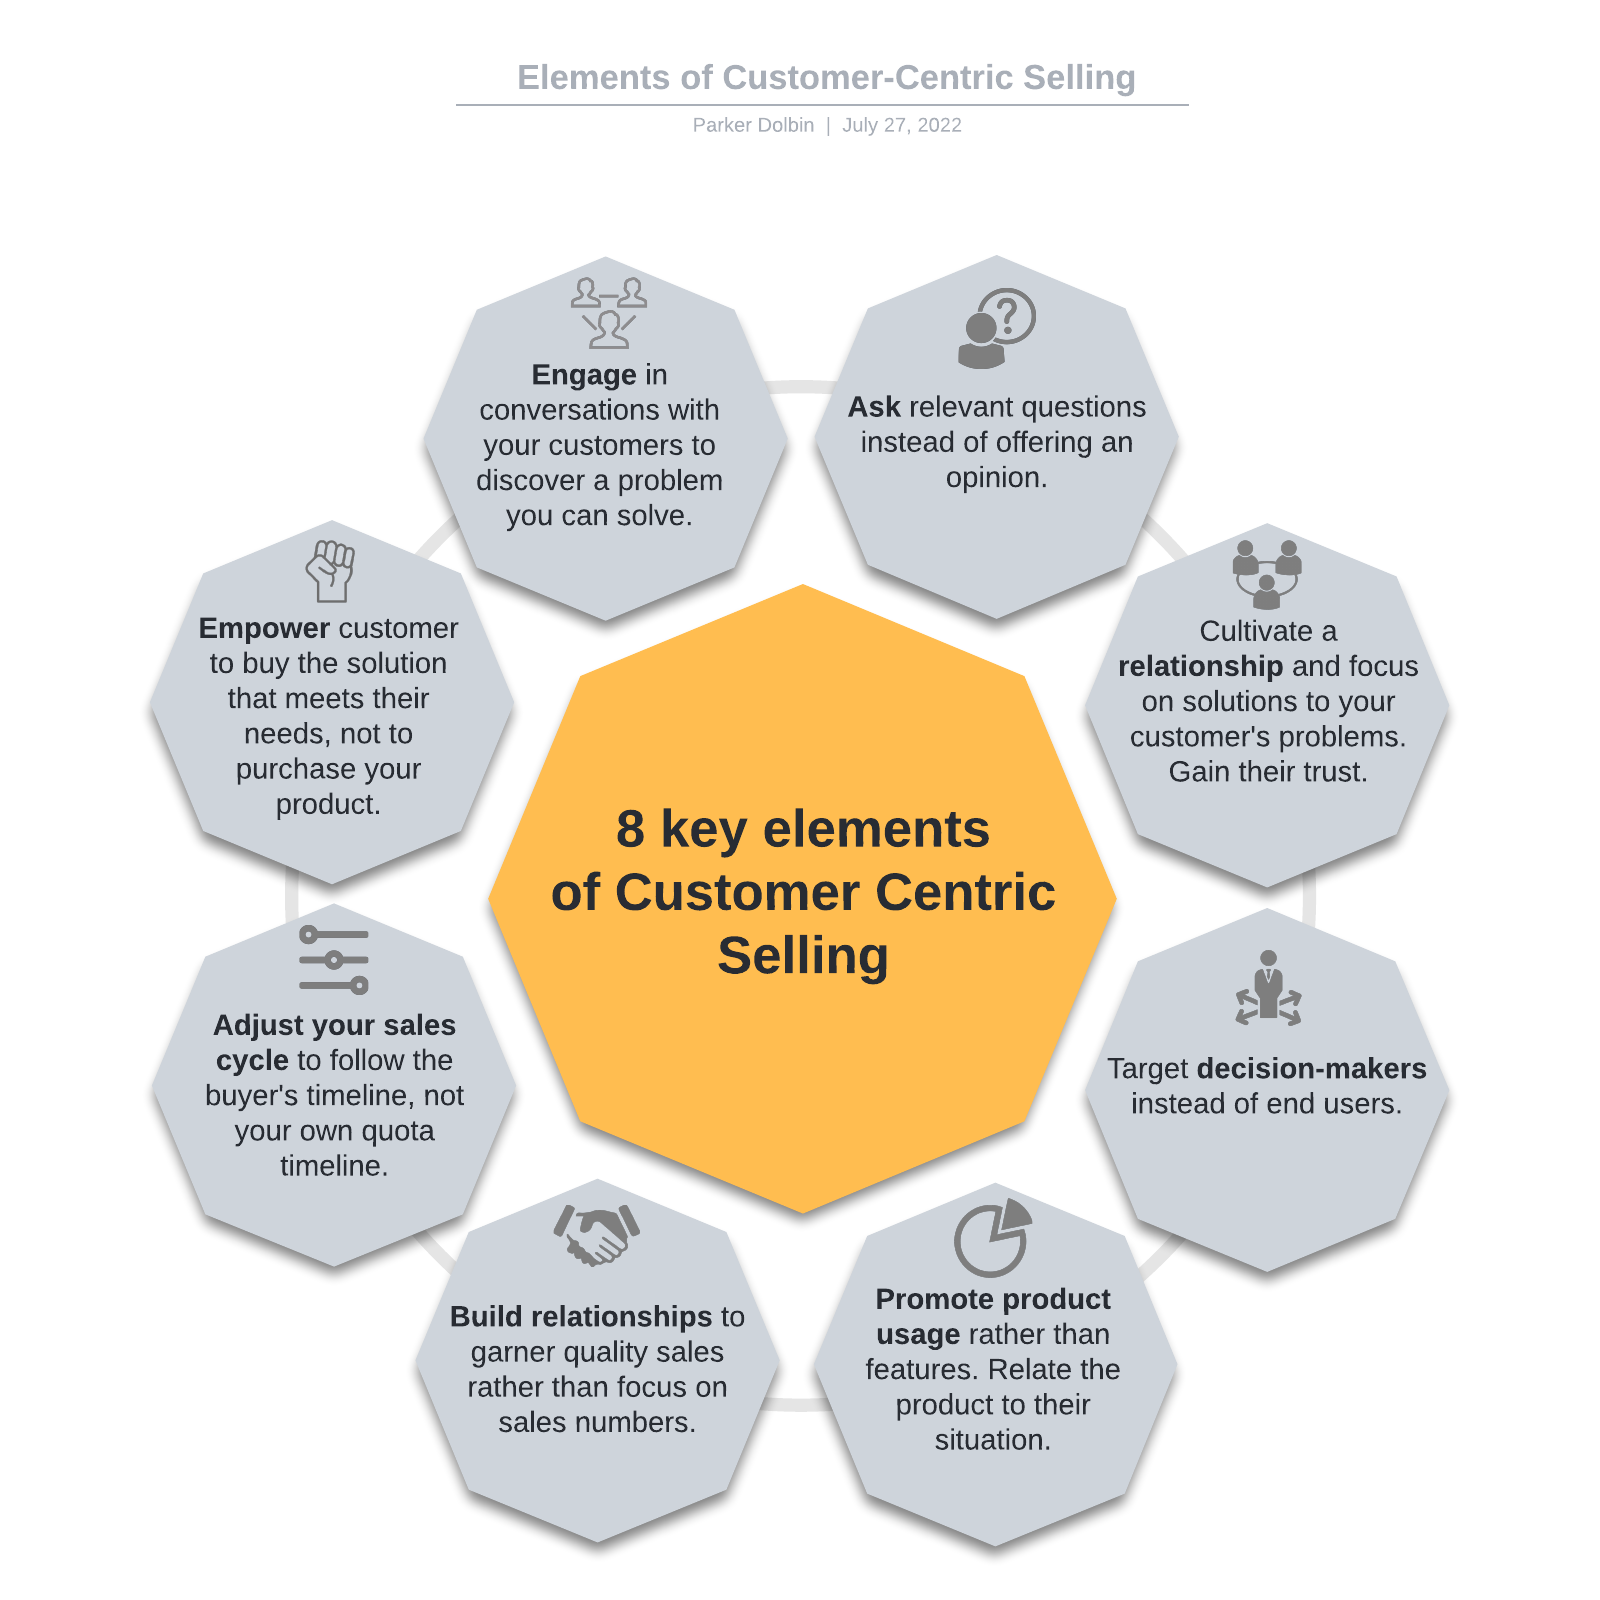 Elements of Customer-Centric Selling